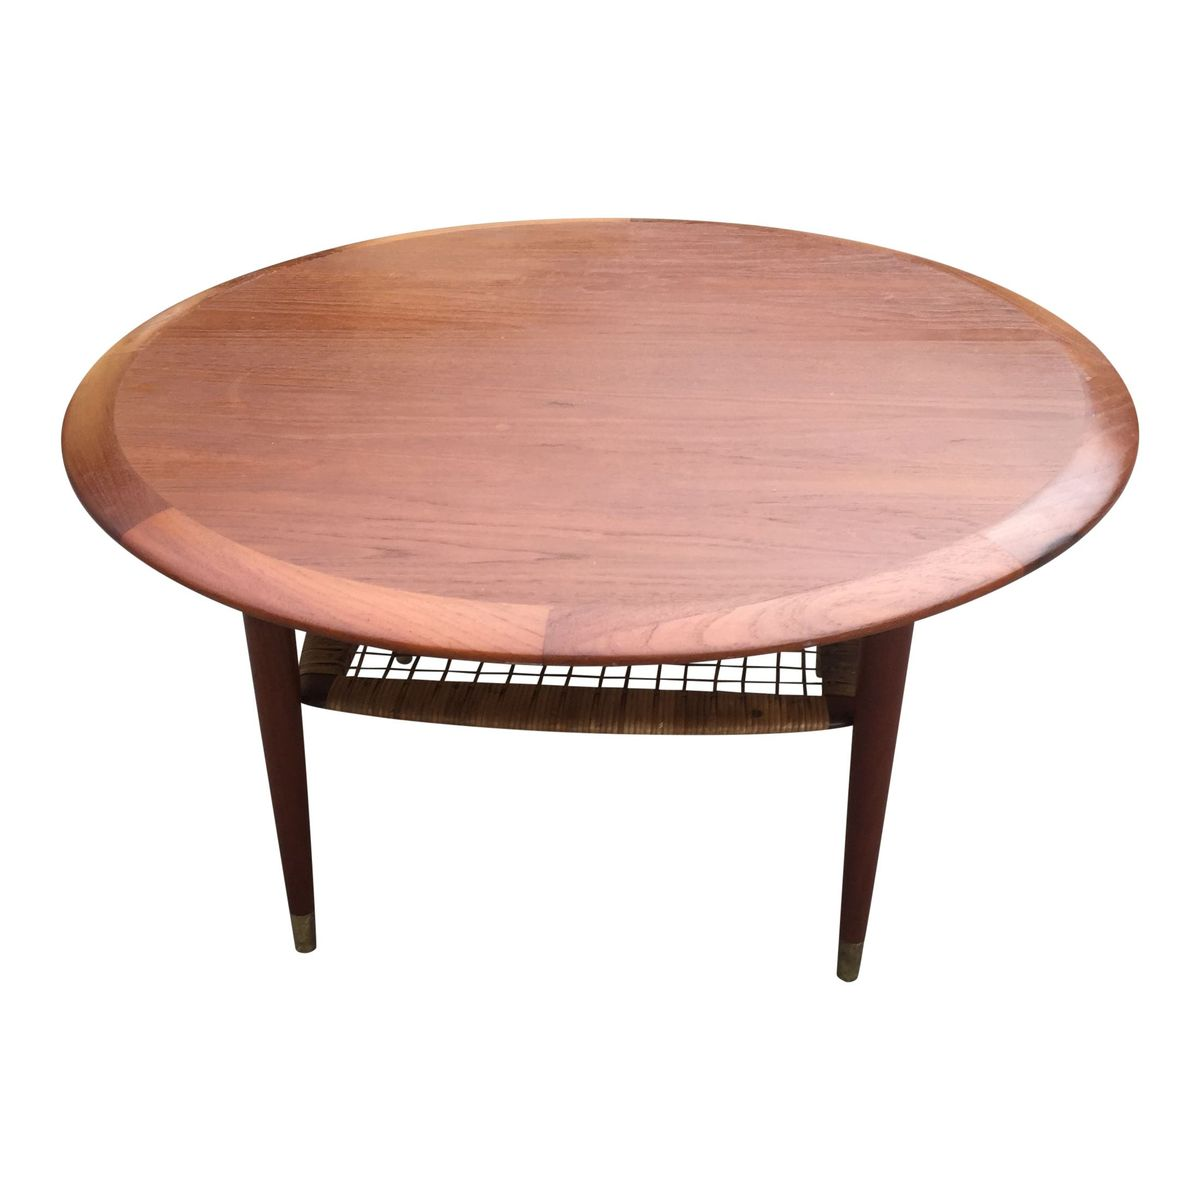 Round Teak Coffee Table From Cfc Silkeborg 1960s For Sale At Pamono